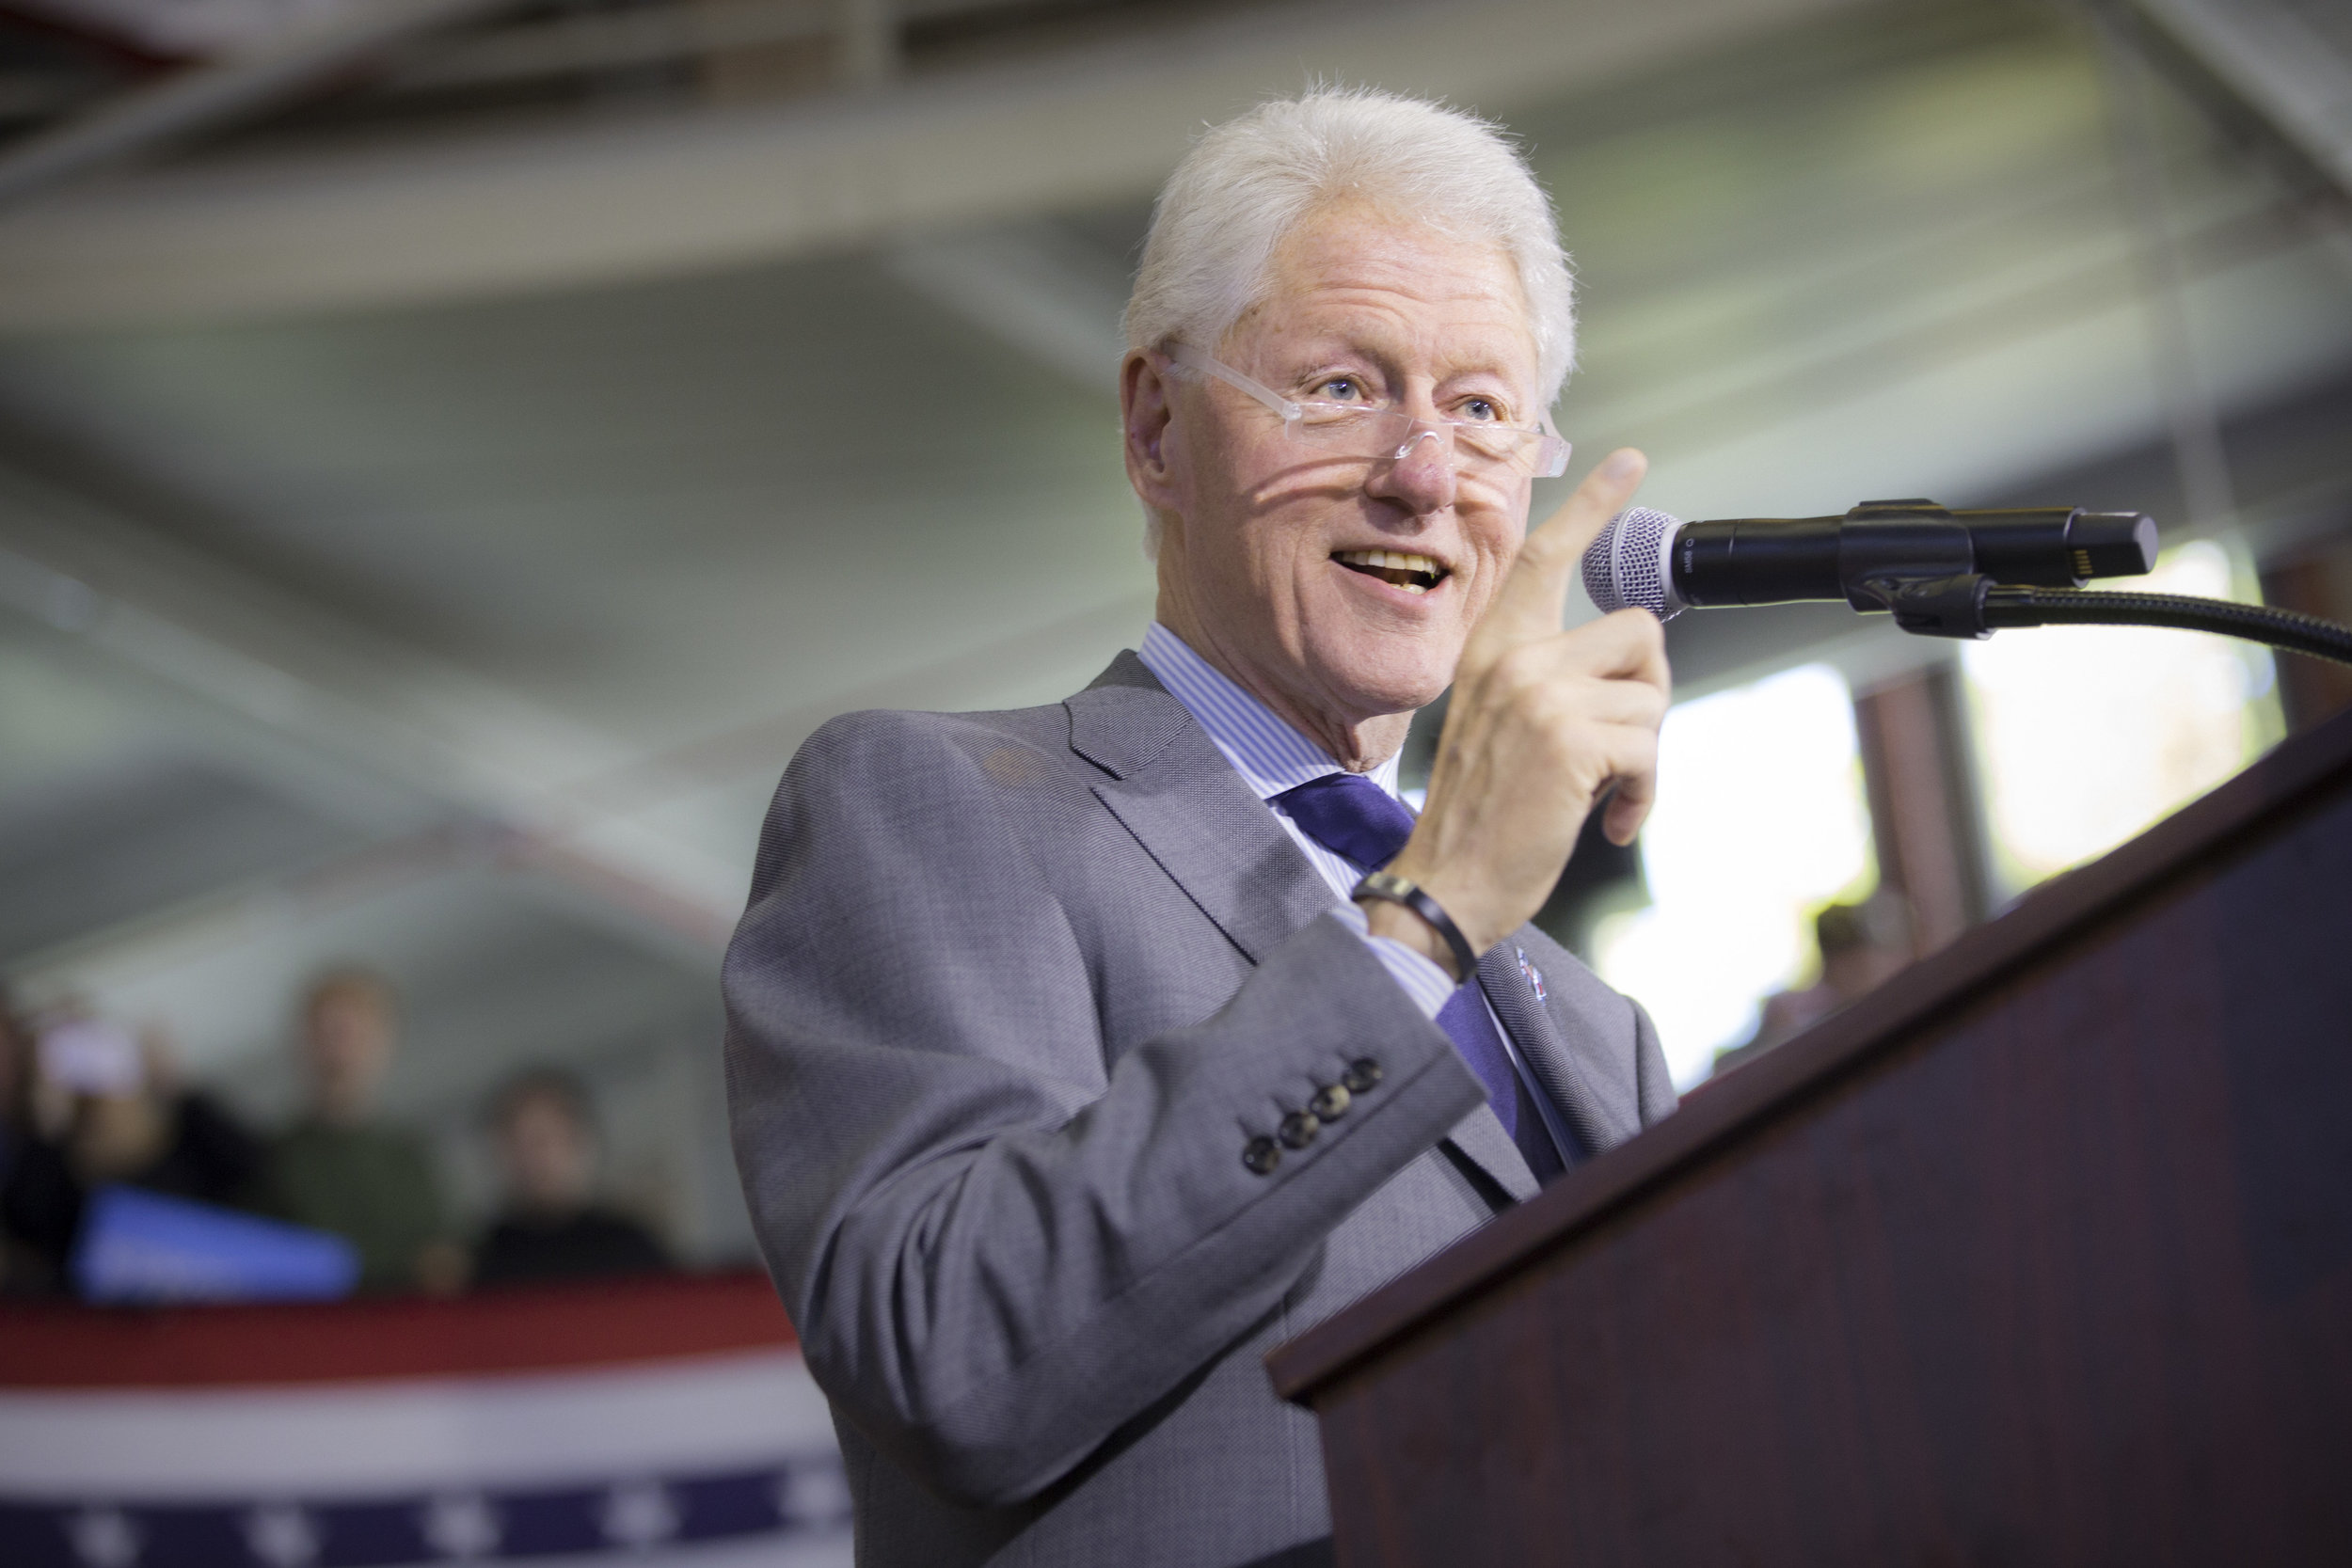 09272016_BJM_Bill_Clinton_in_Toledo_Ohio_05.jpg